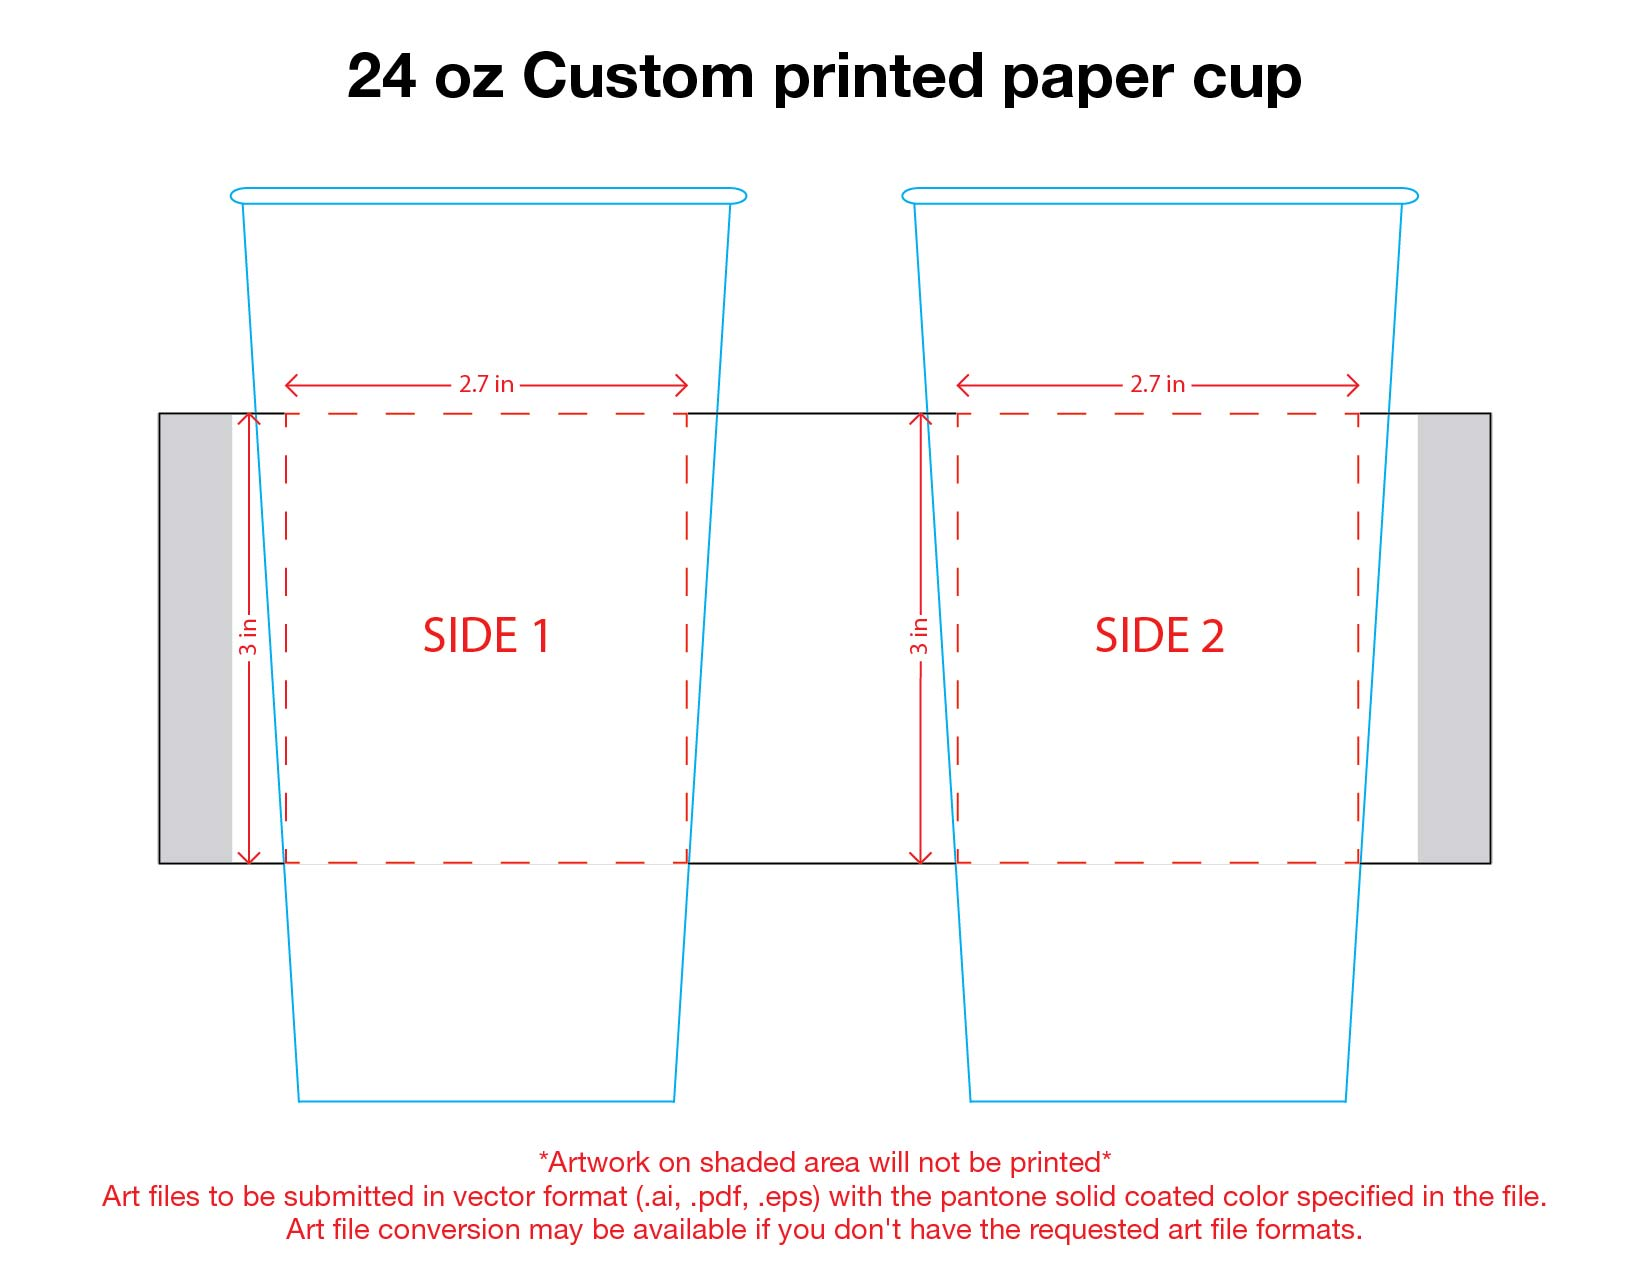 24 oz. Custom Printed Recyclable Paper